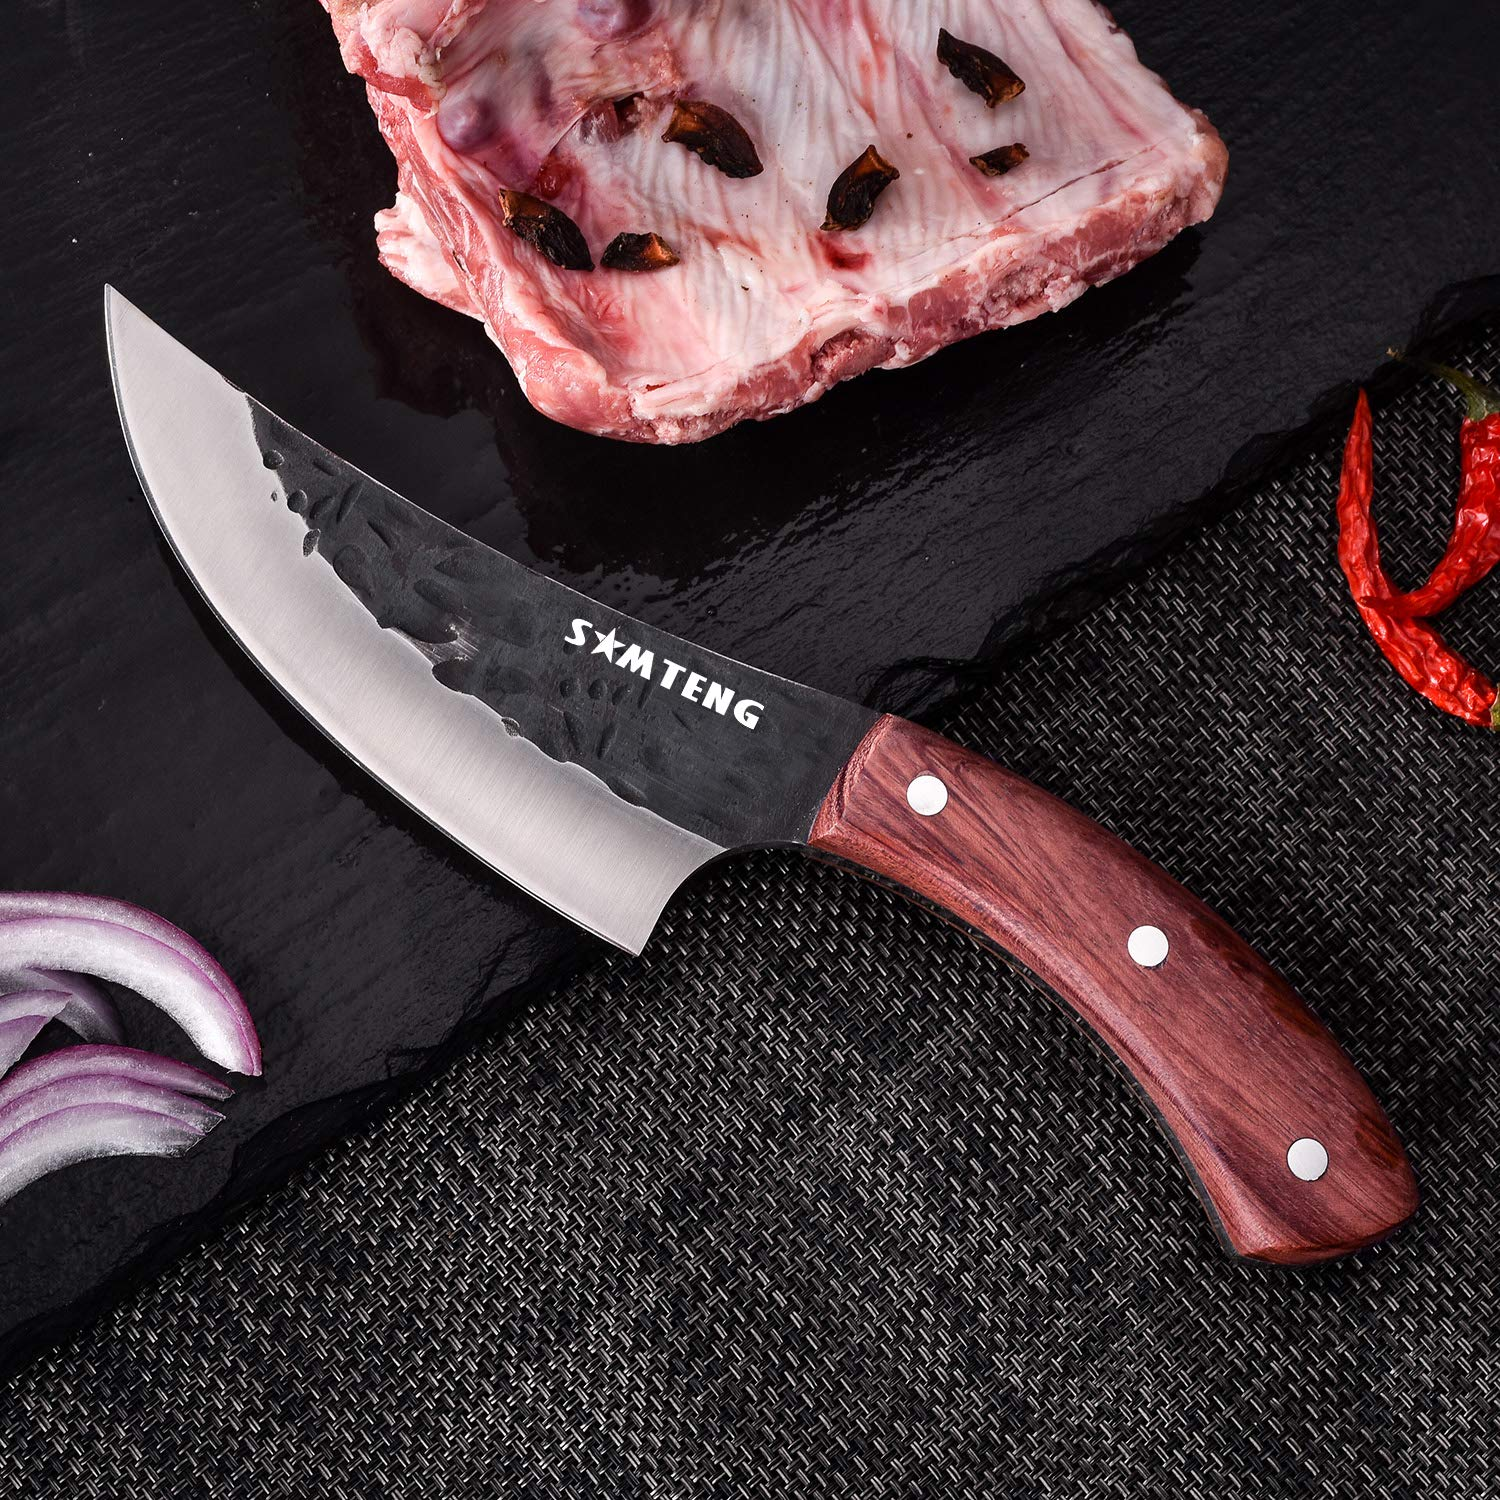 SMTENG Boning Knife 5.5 inch Handmade Forged Hammered kitchen Knife Full tang Sharp Blade Chef Knives Outdoor BBQ Meat Cleaver by SMTENG (Image #5)